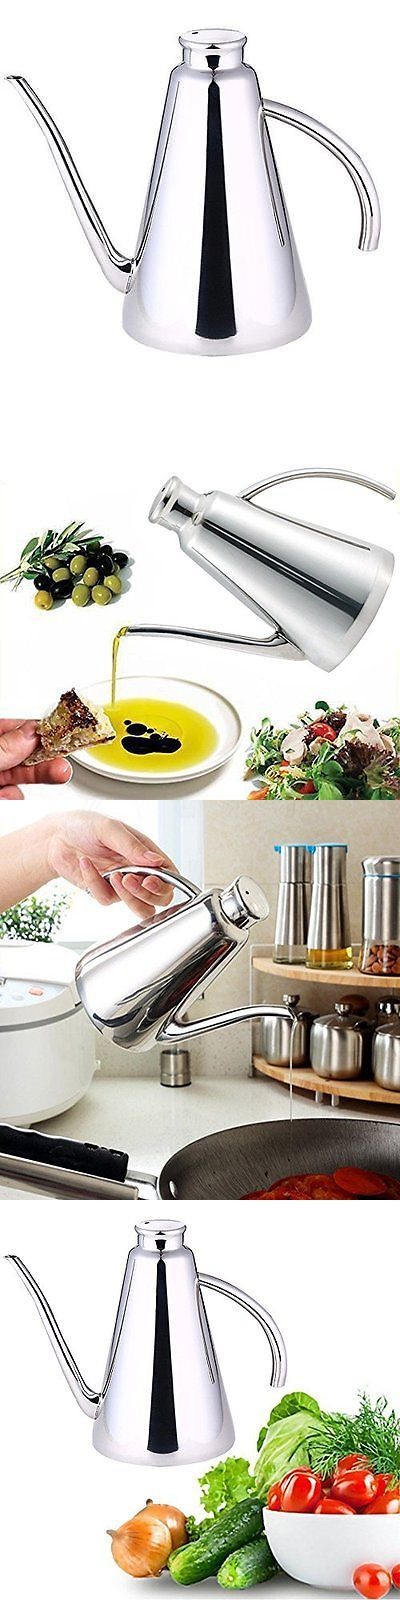 Oil and Vinegar Dispensers 54122: Amfocus Stainless Steel Olive Oil Can Drizzler Pot With Drip-Free Spout, 15 Oz -> BUY IT NOW ONLY: $39.44 on eBay!